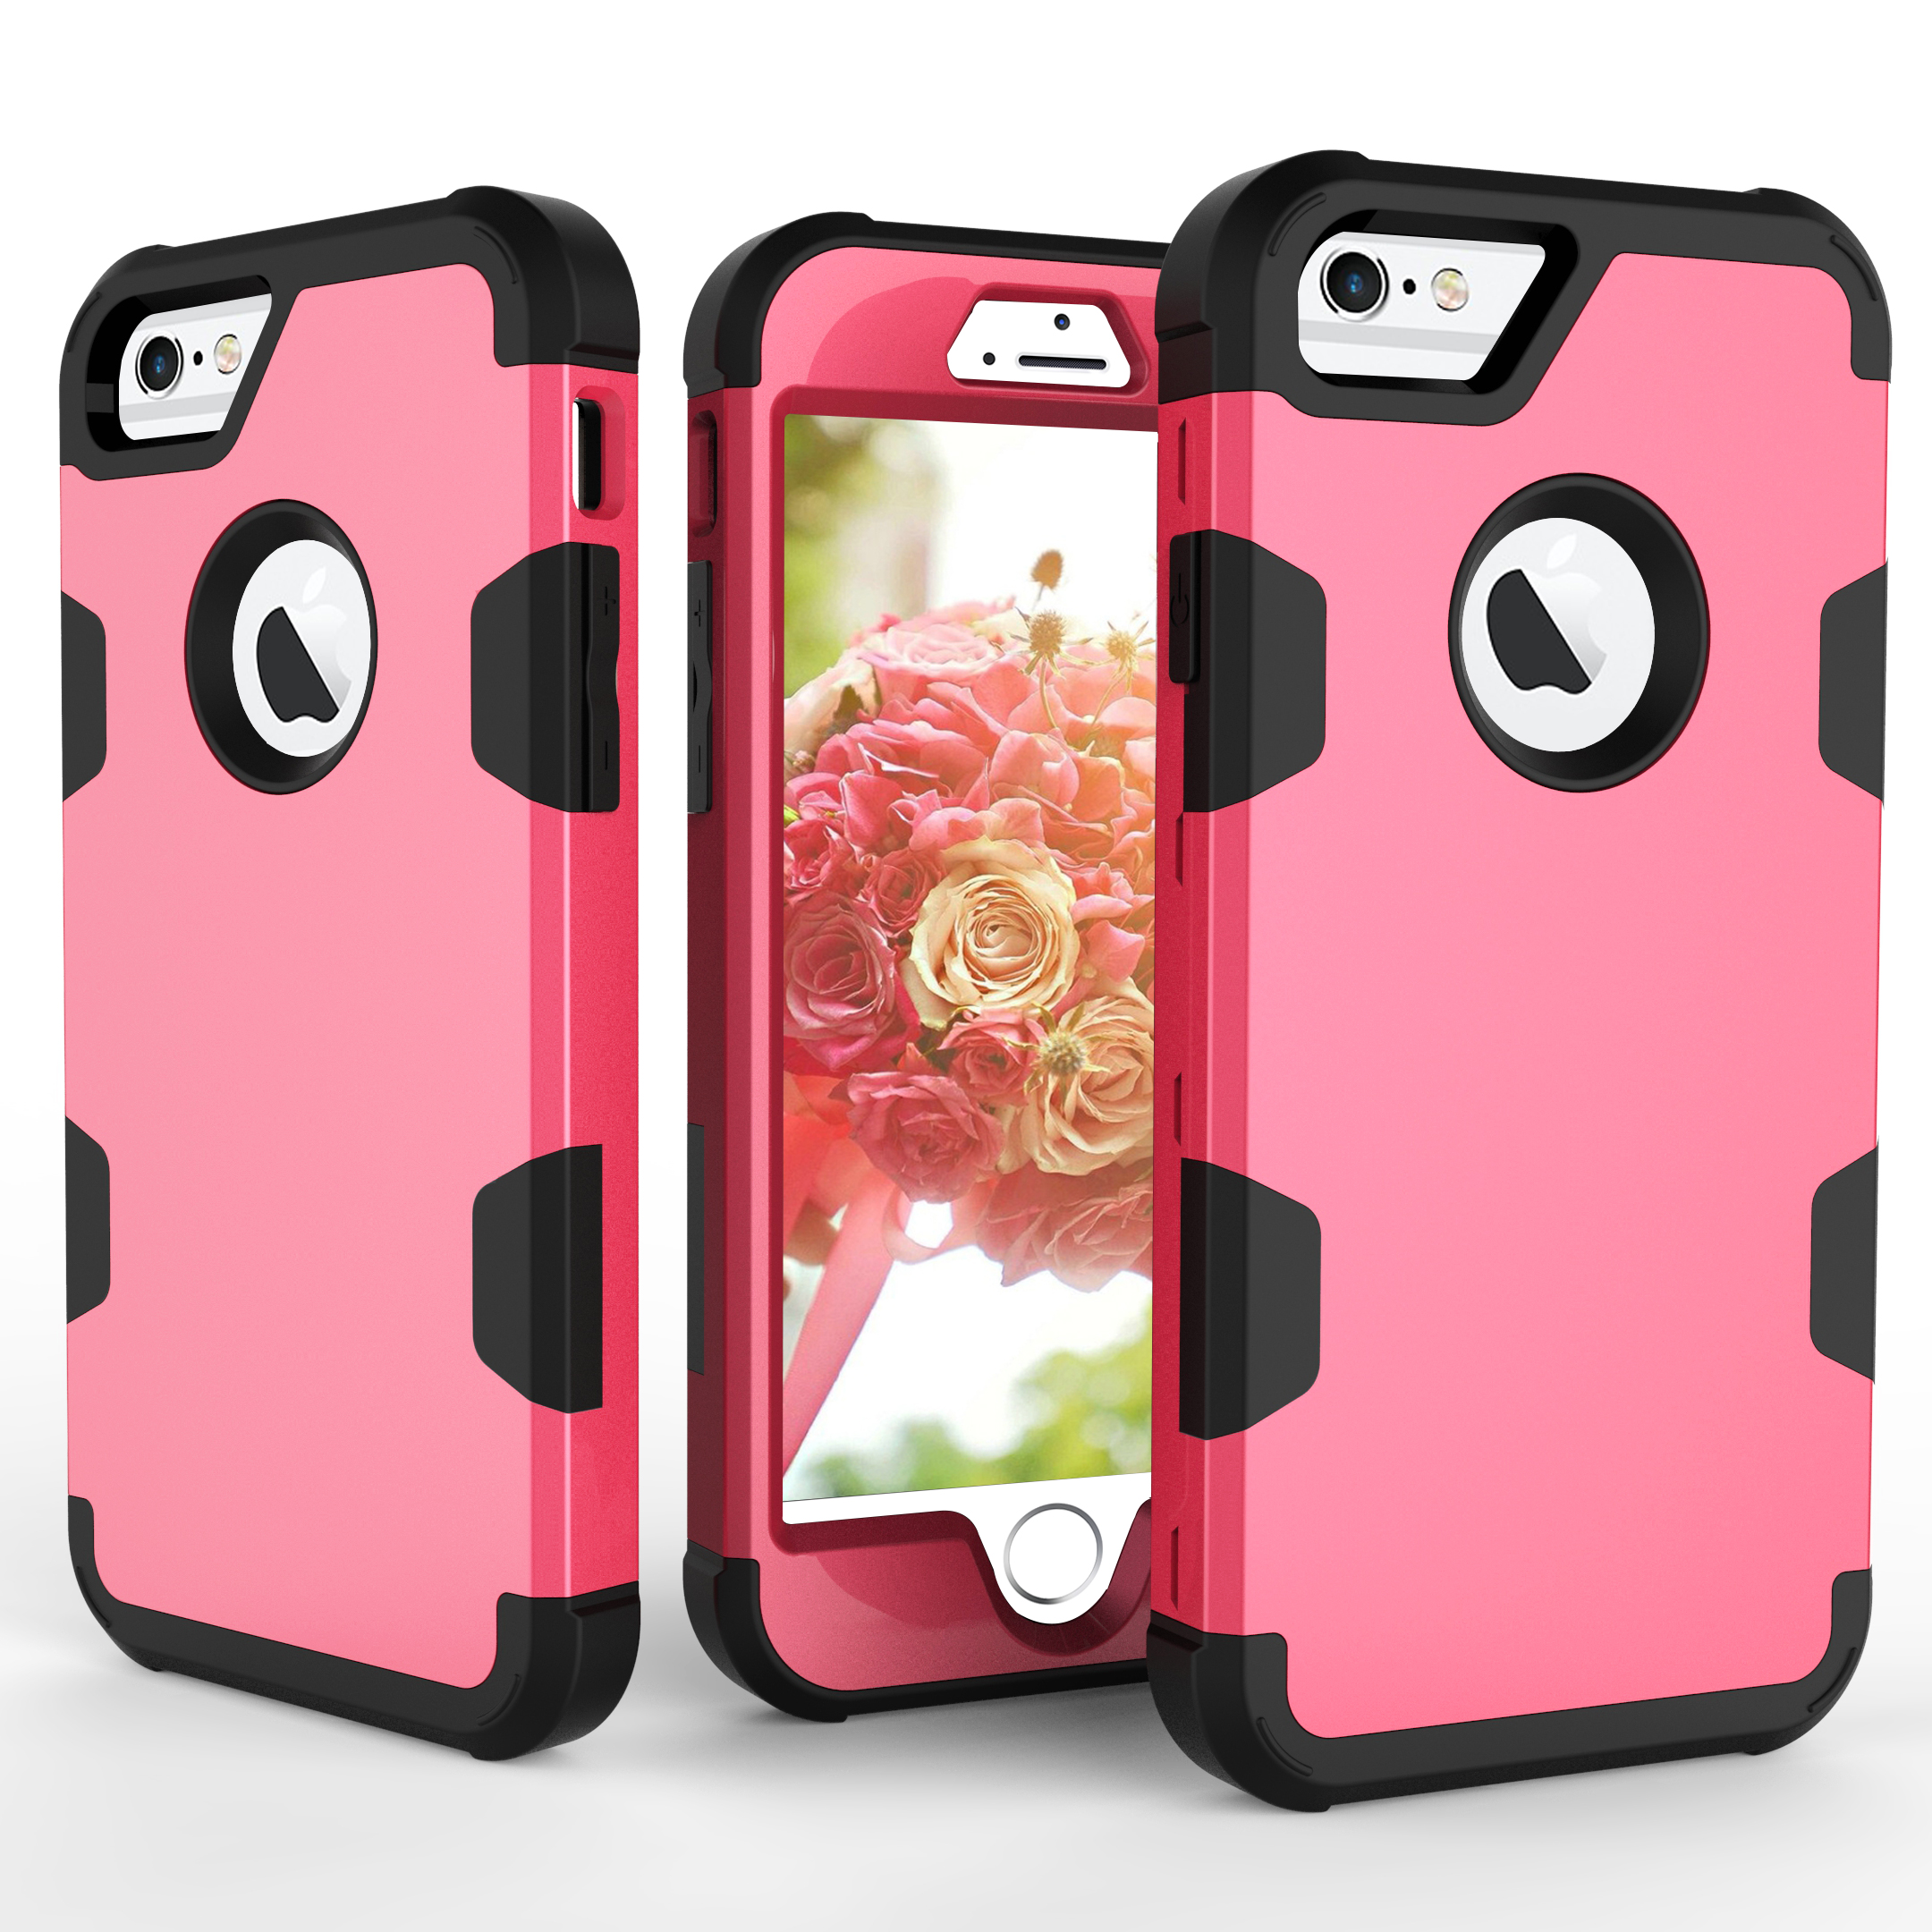 For iPhone 6/6S PC+ Silicone 2 in 1 Hit Color Tri-proof Shockproof Dustproof Anti-fall Protective Cover Back Case Rose red + black